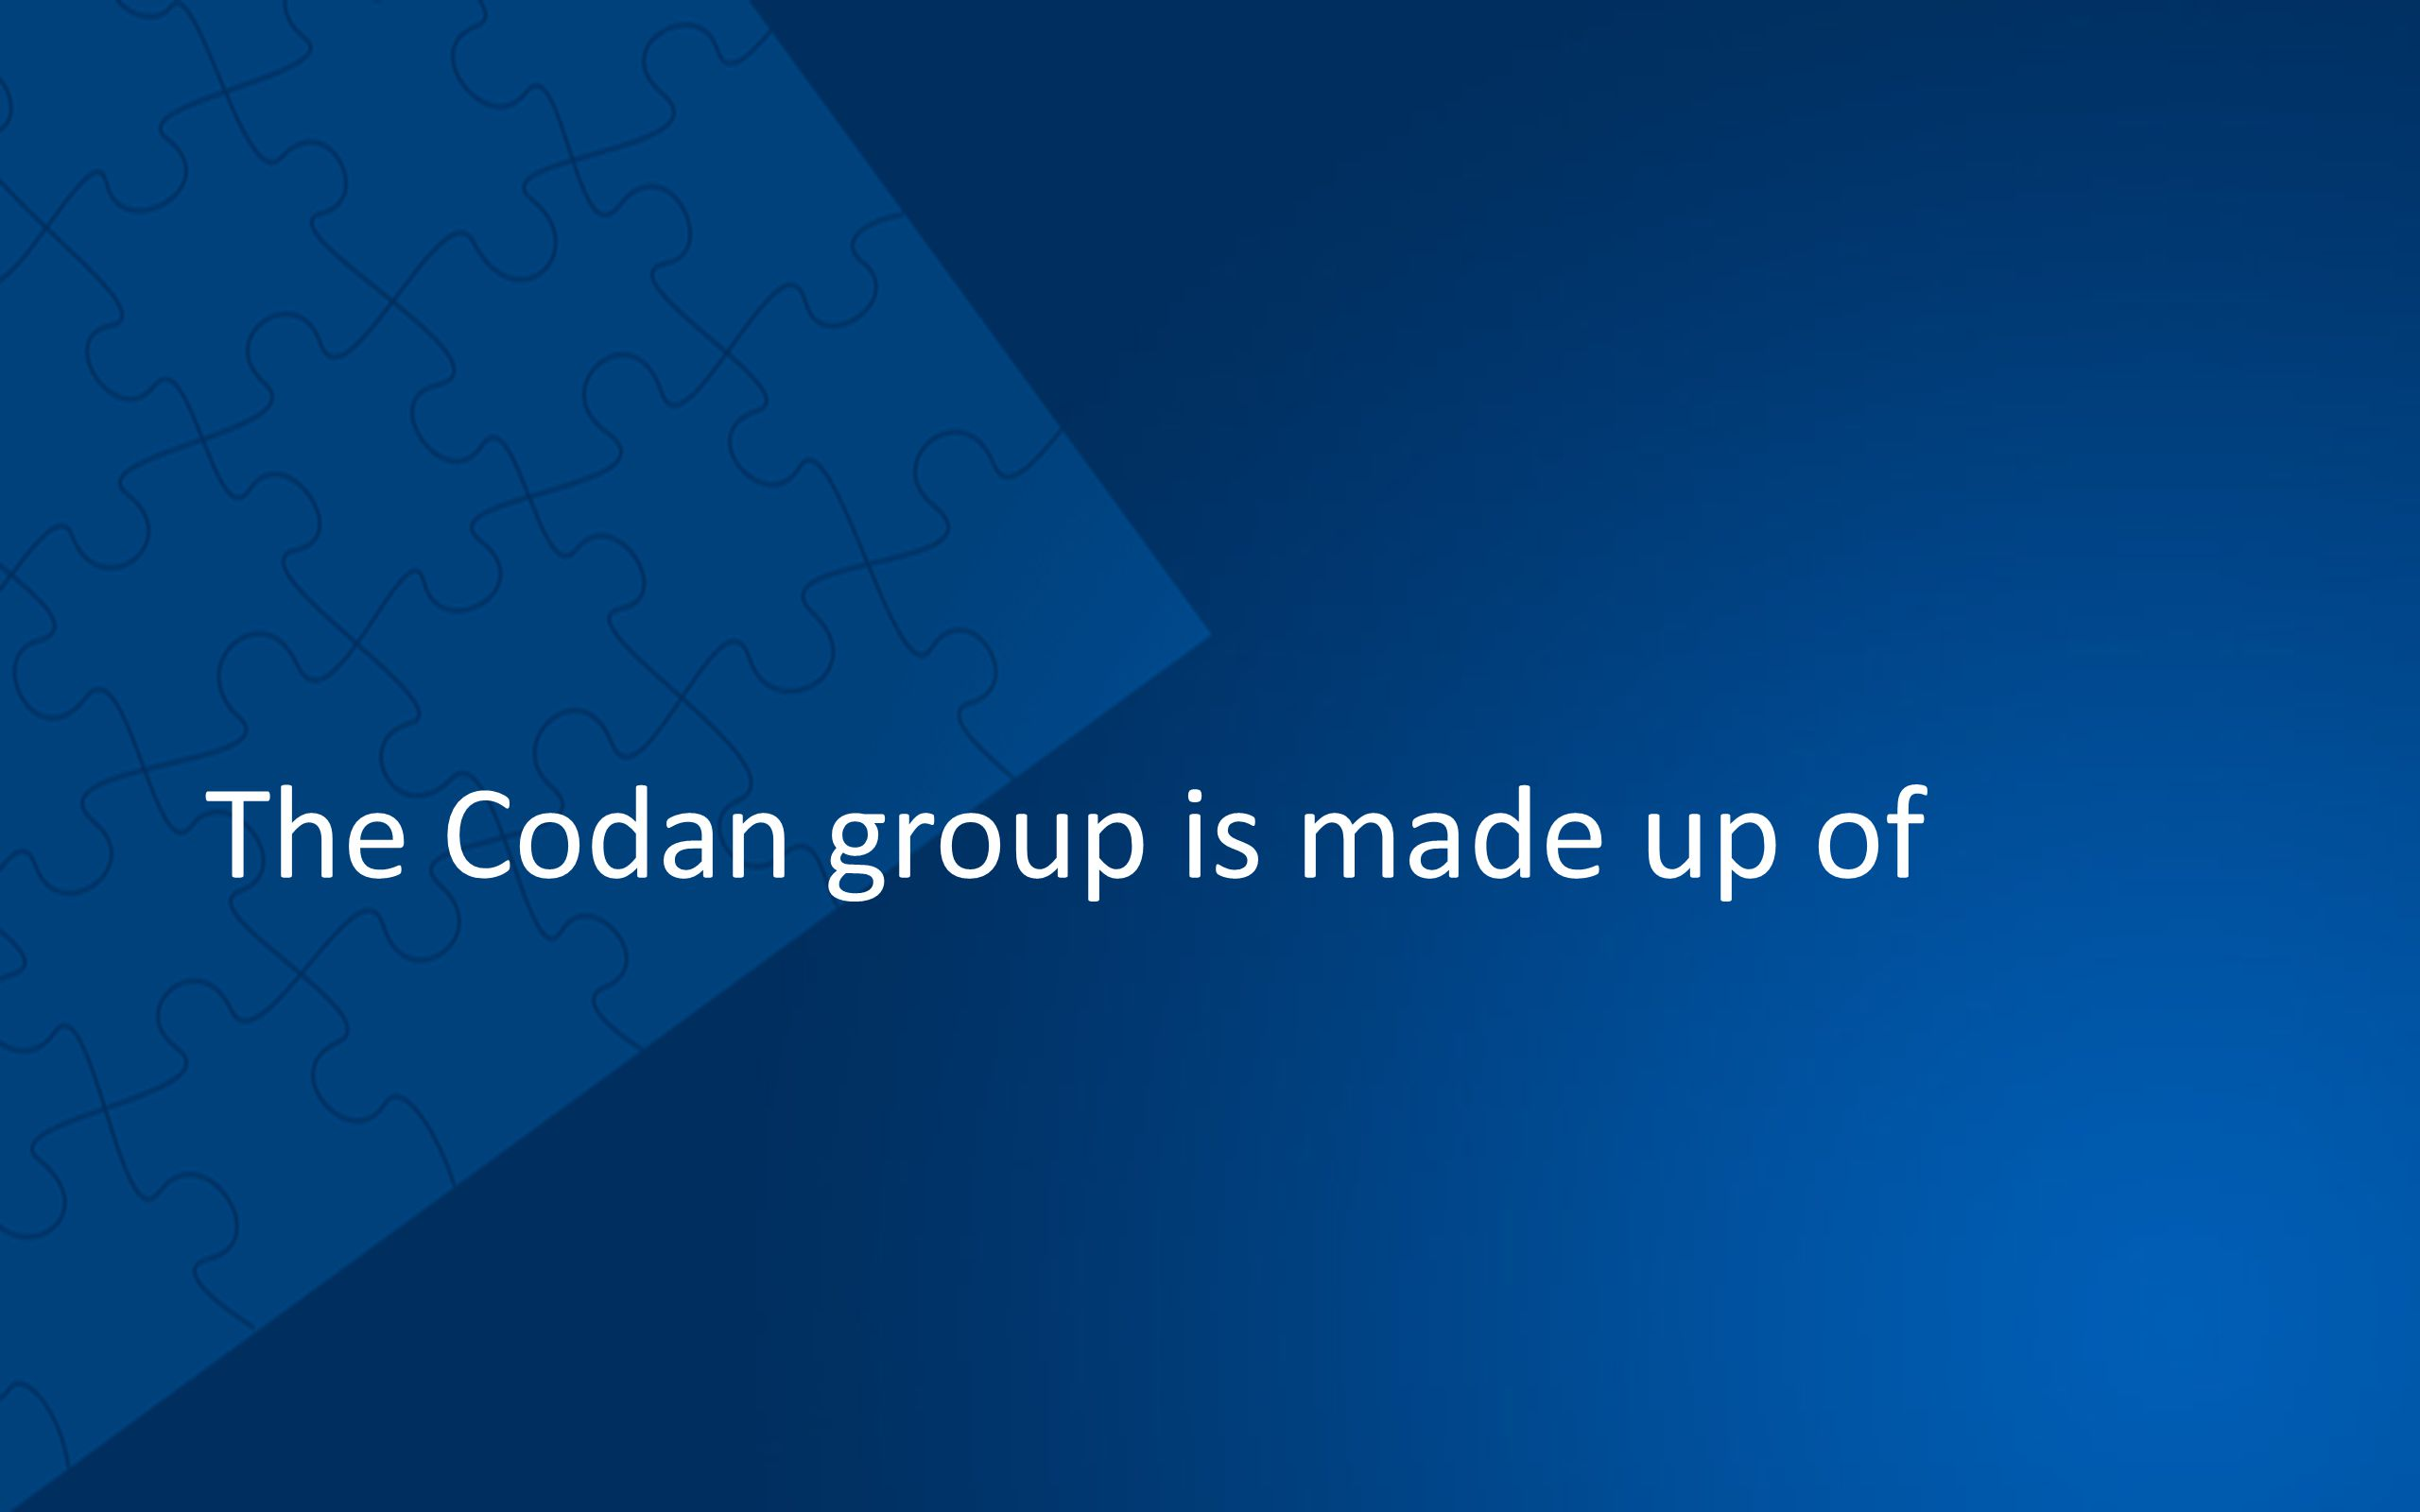 The Codan group is made up of